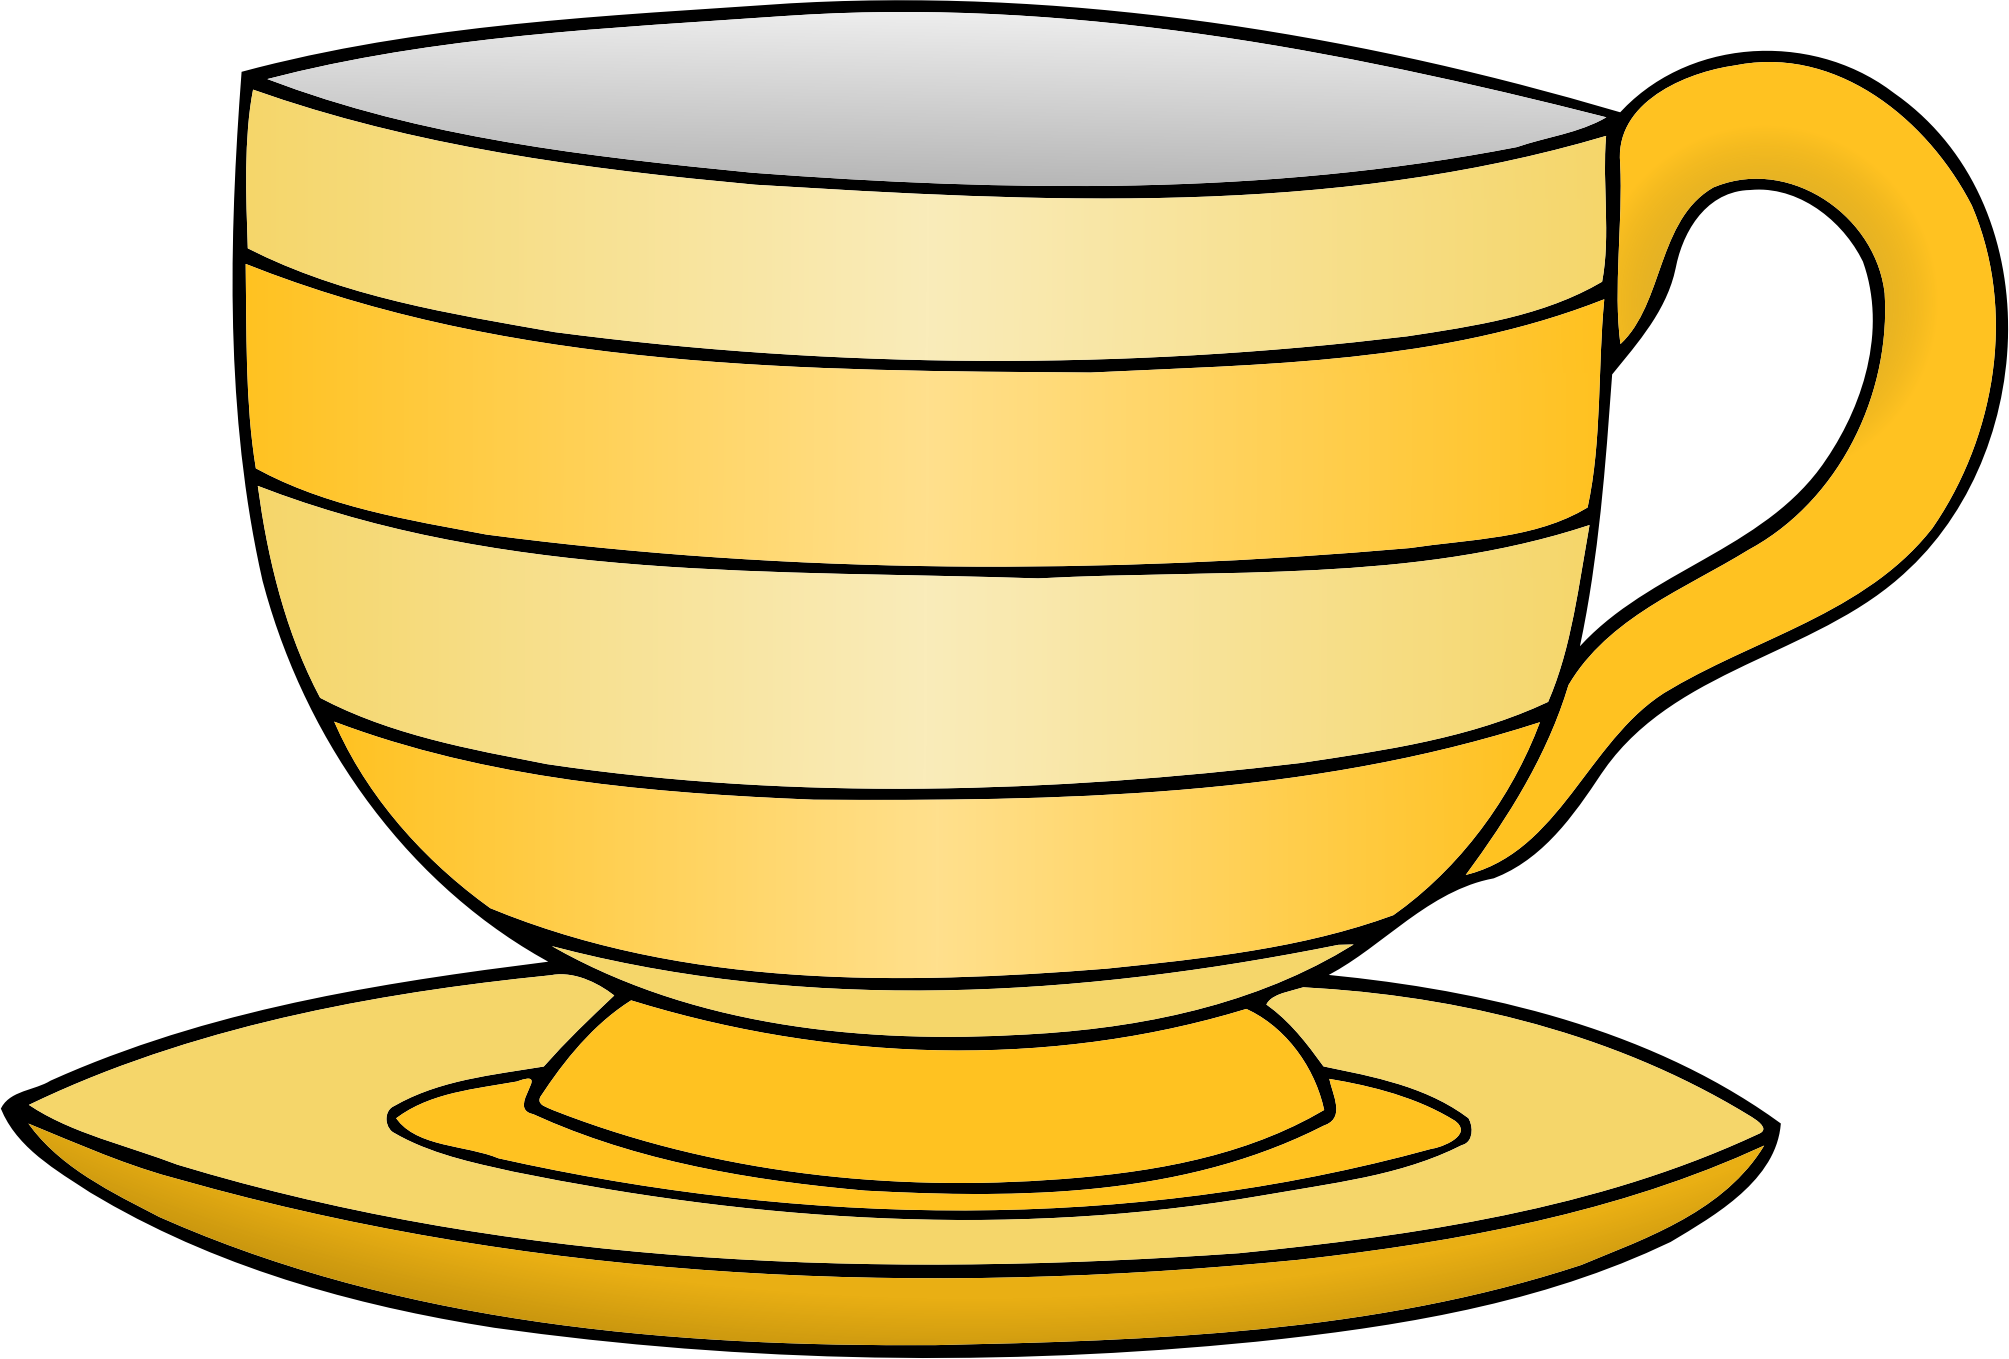 Teacup big image png. Clipart kitchen crockery